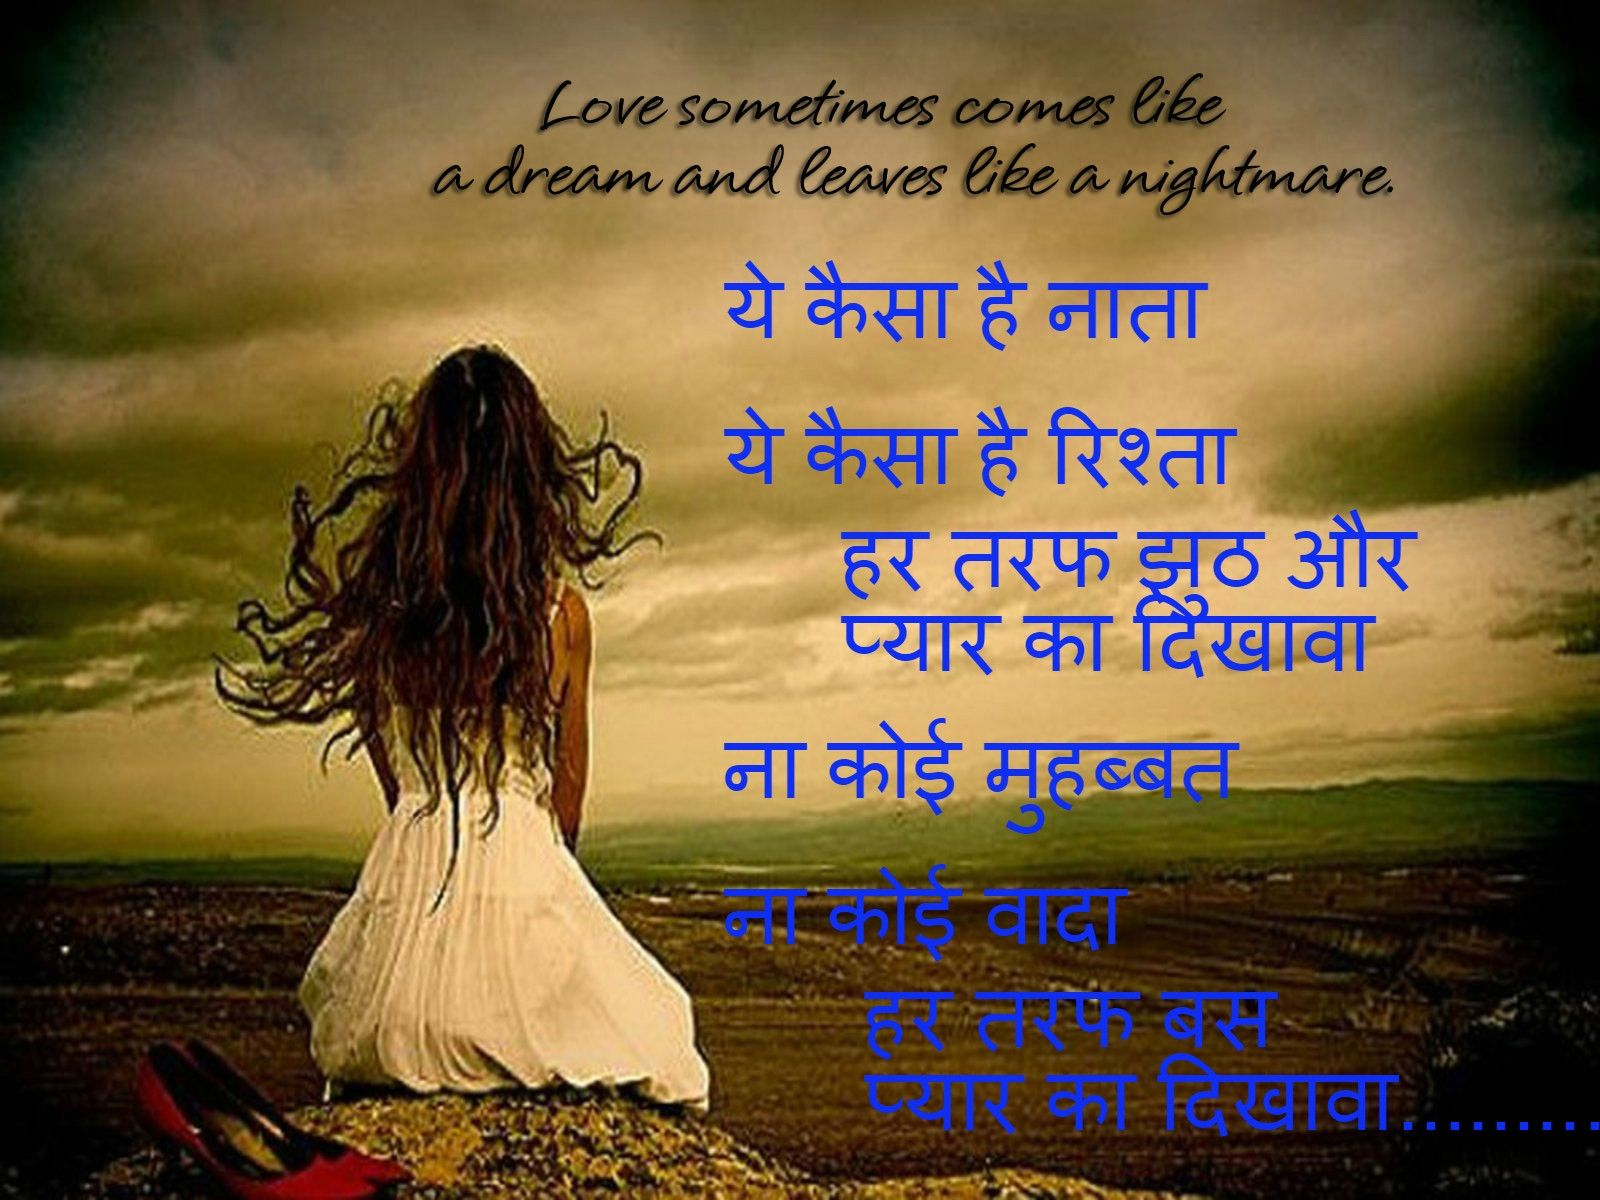 Wallpaper download love shayri - Download Images Of Love With Shayari Shayari Hi Shayari Love Shayari Image Hindi Hindi Shayari